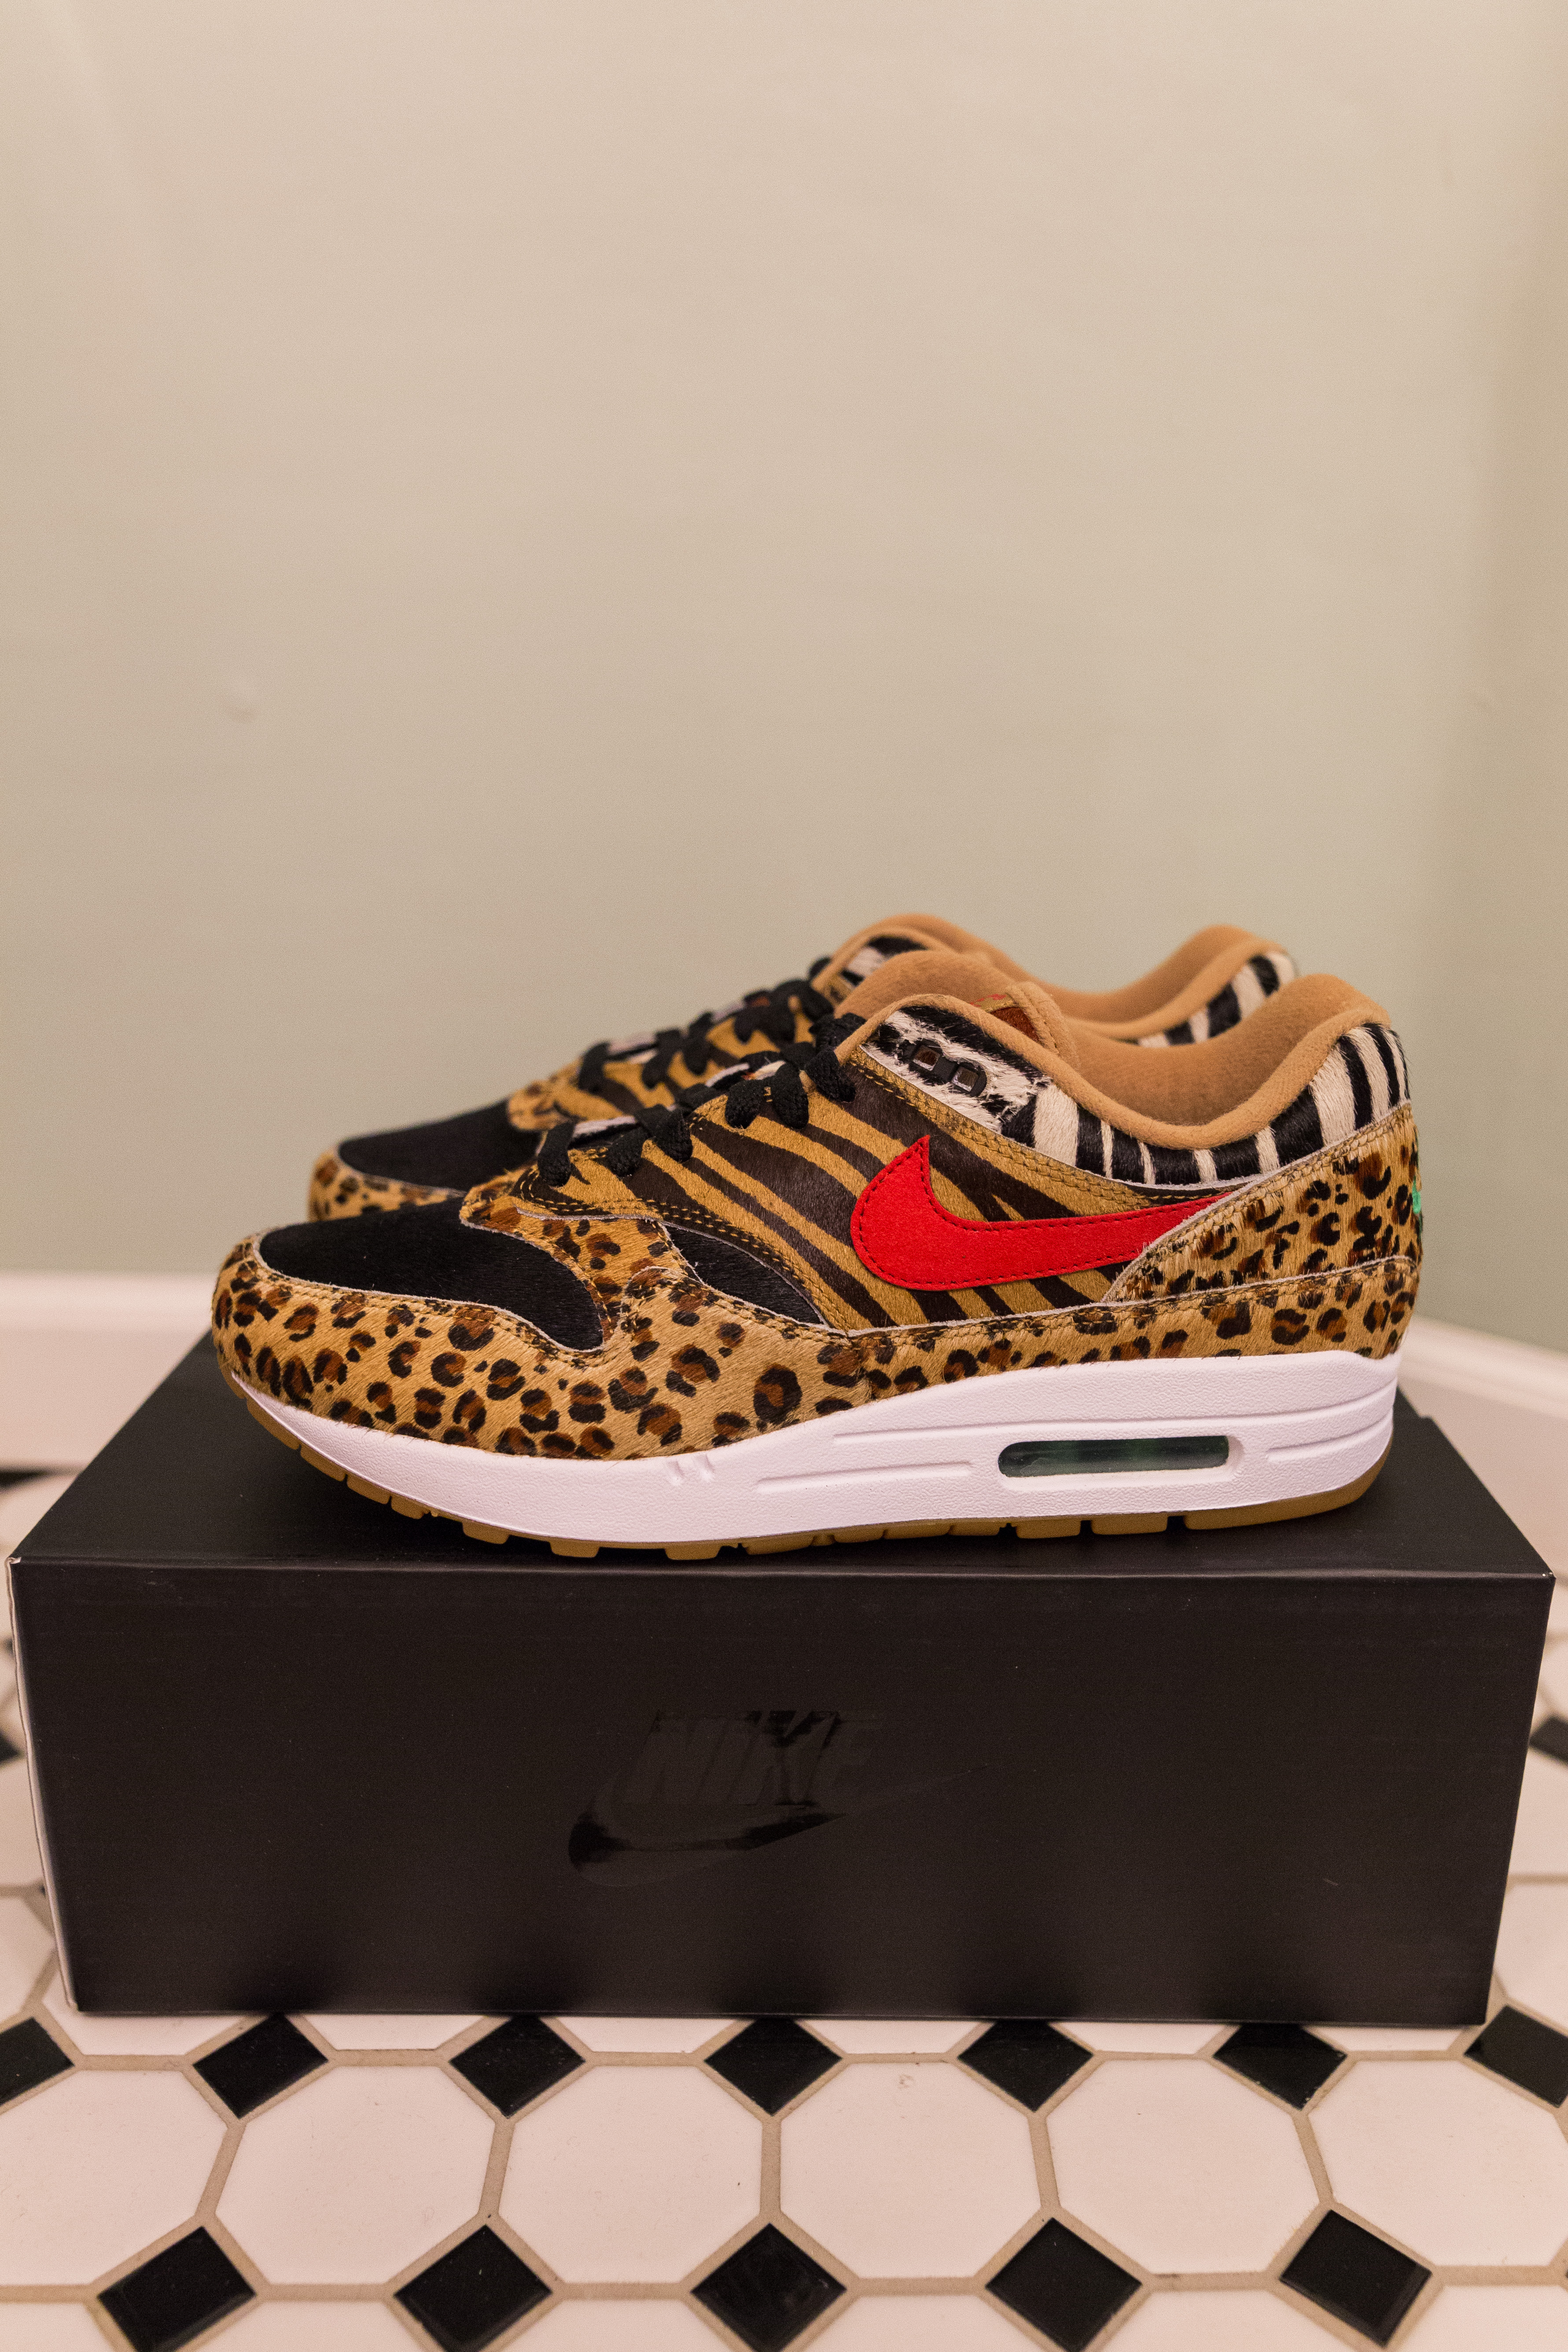 factory price f393a e52c3 Nike × Atmos ×. Air Max 1 ATMOS Animal Pack 2.0 Safari DLX ...